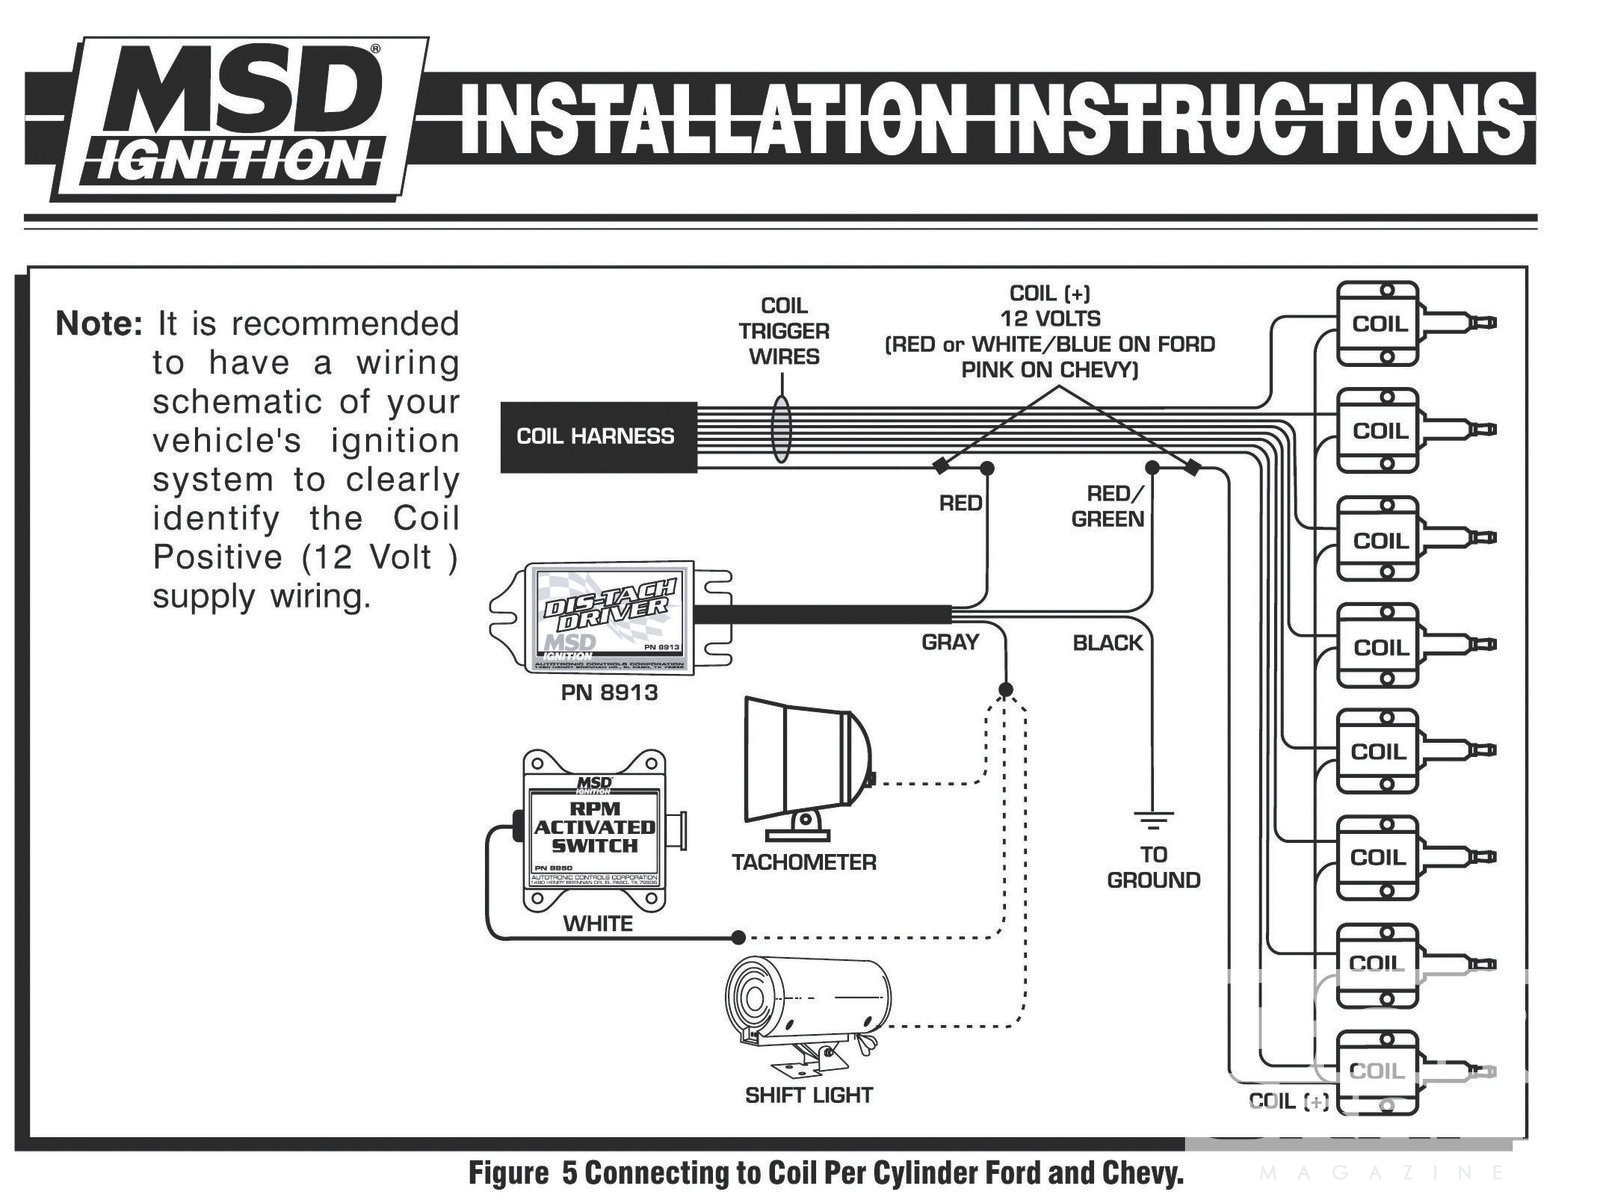 hight resolution of electronic ignition tach install install a tach in a dis car hot super pro tach wiring dodge 360 wiring tach